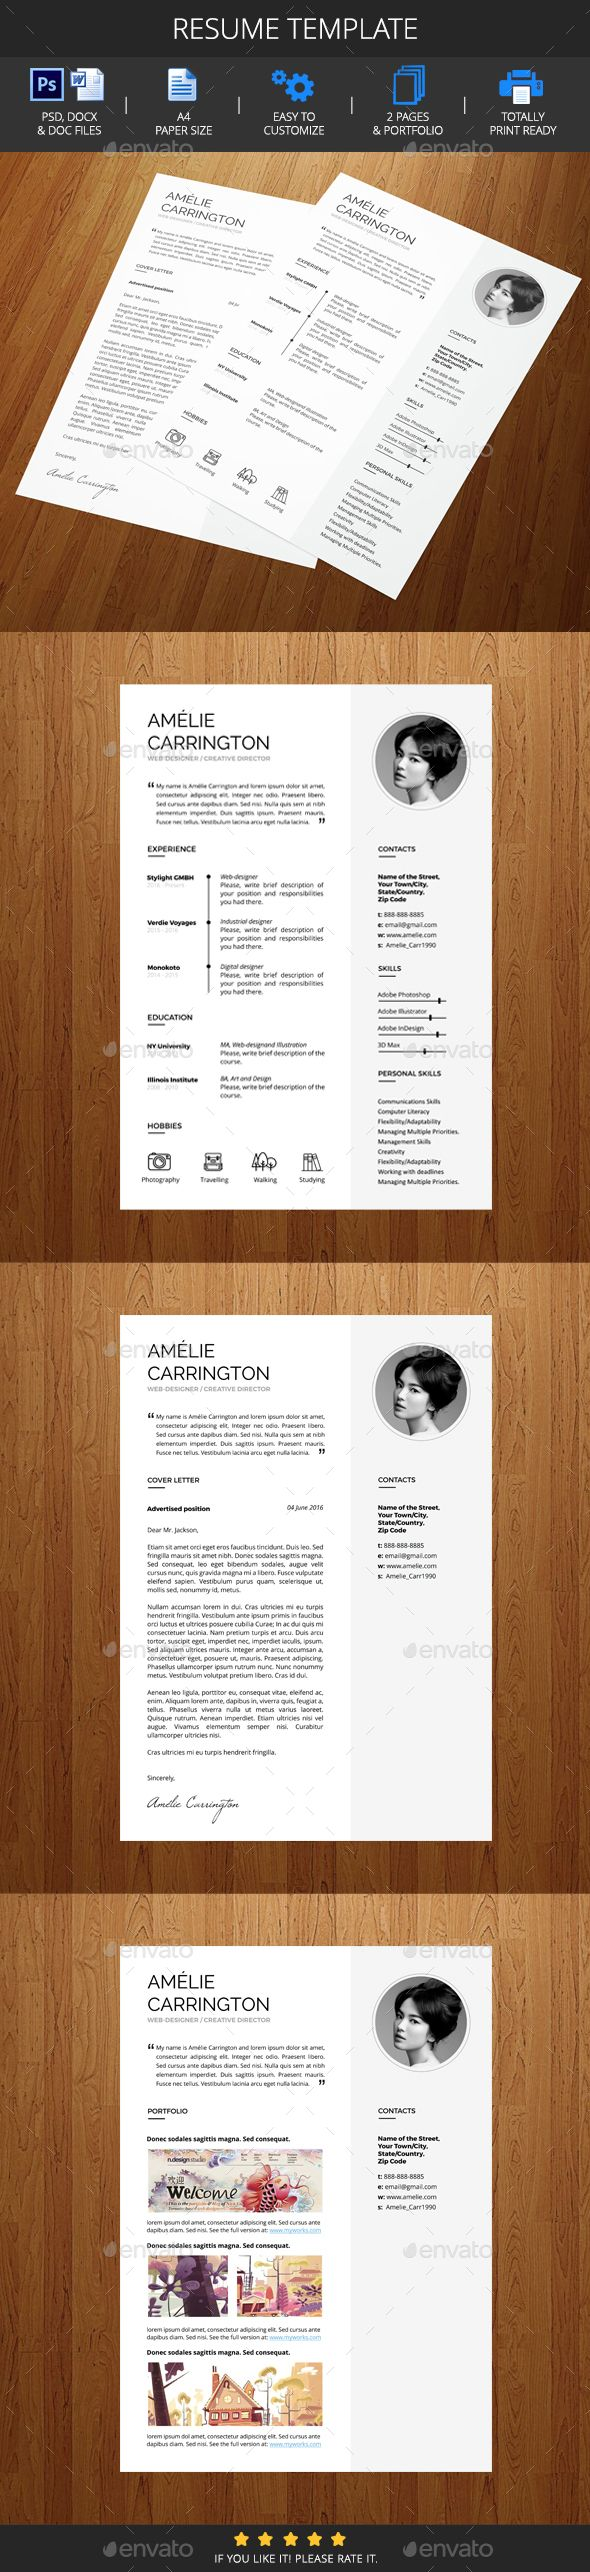 713 best Design: CV & Resumes images on Pinterest | Resume ...